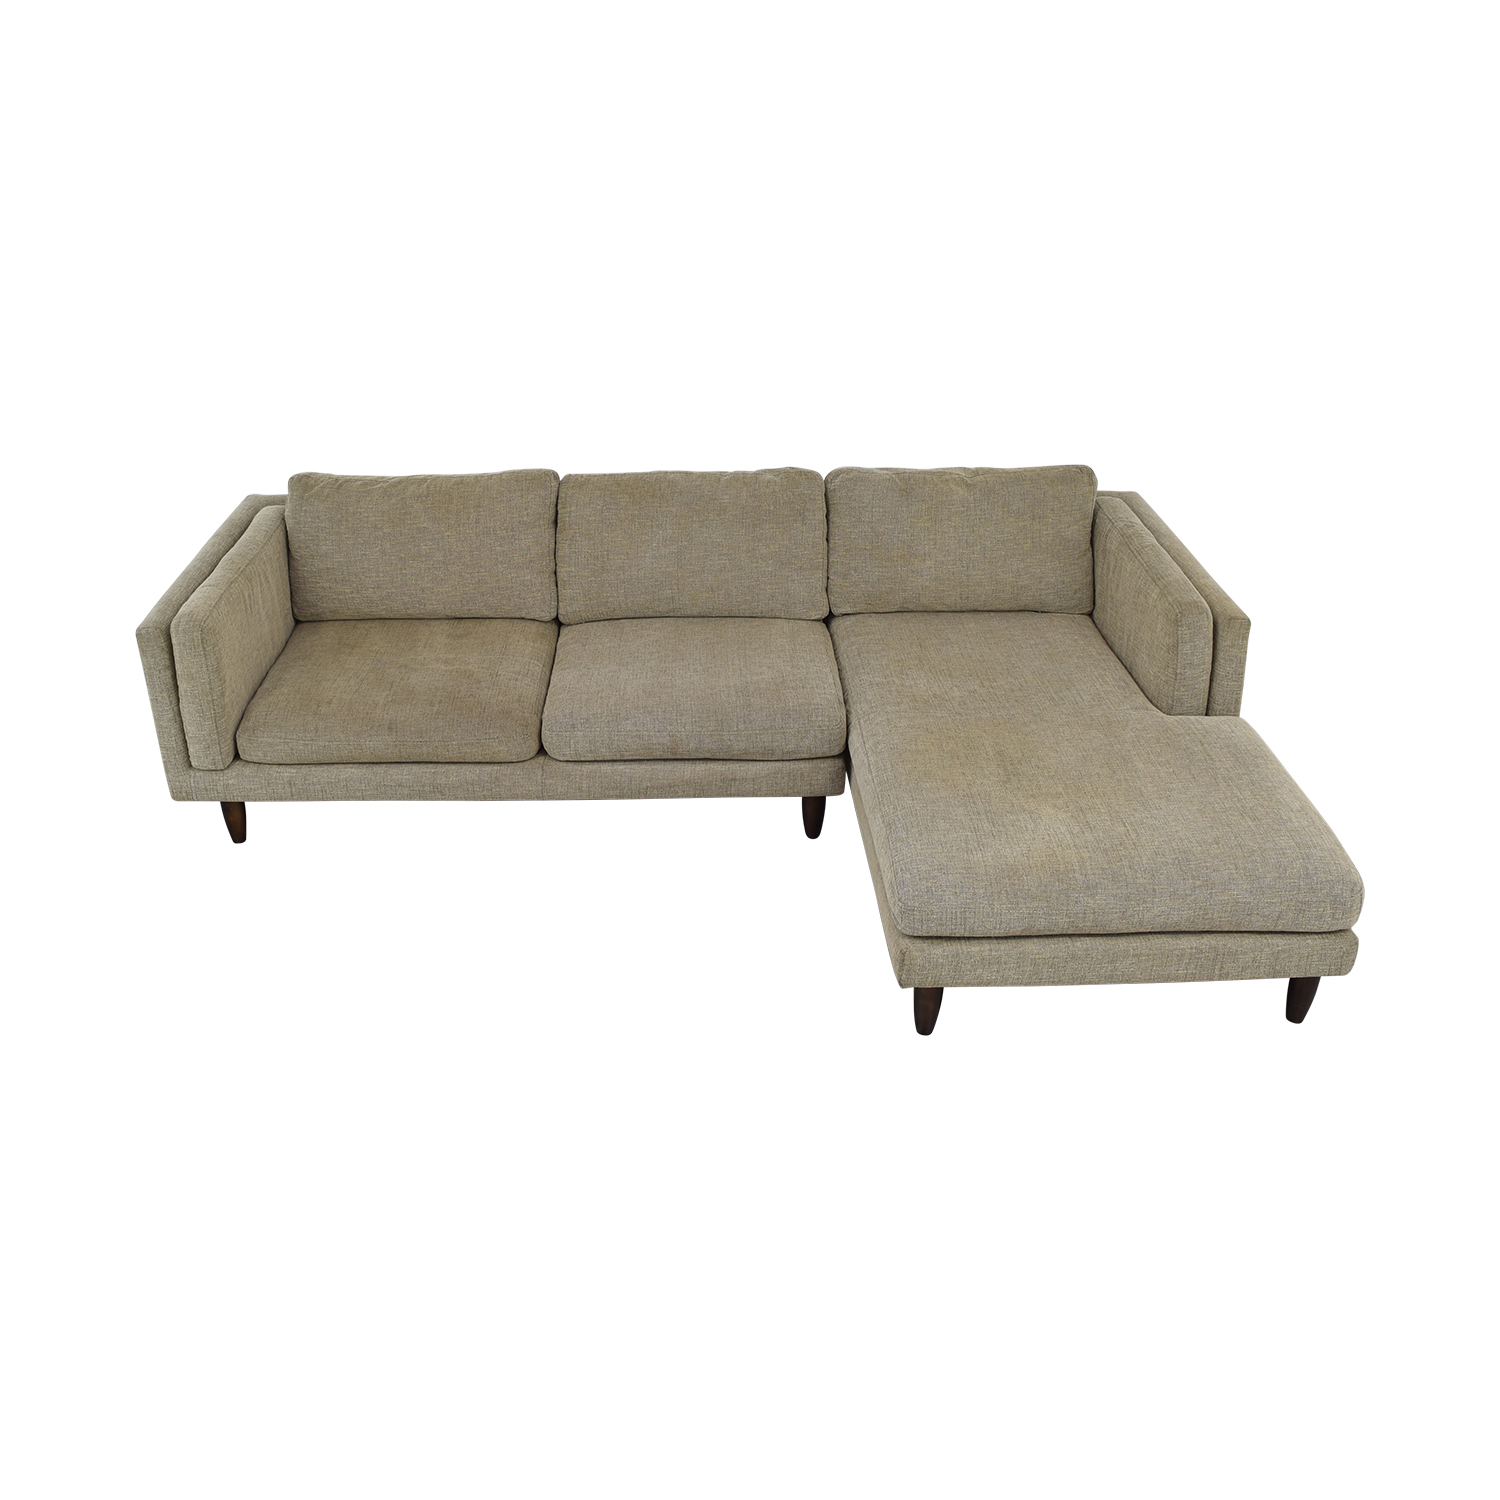 Admirable 76 Off Jason Furniture Chaise Sectional Couch Sofas Unemploymentrelief Wooden Chair Designs For Living Room Unemploymentrelieforg